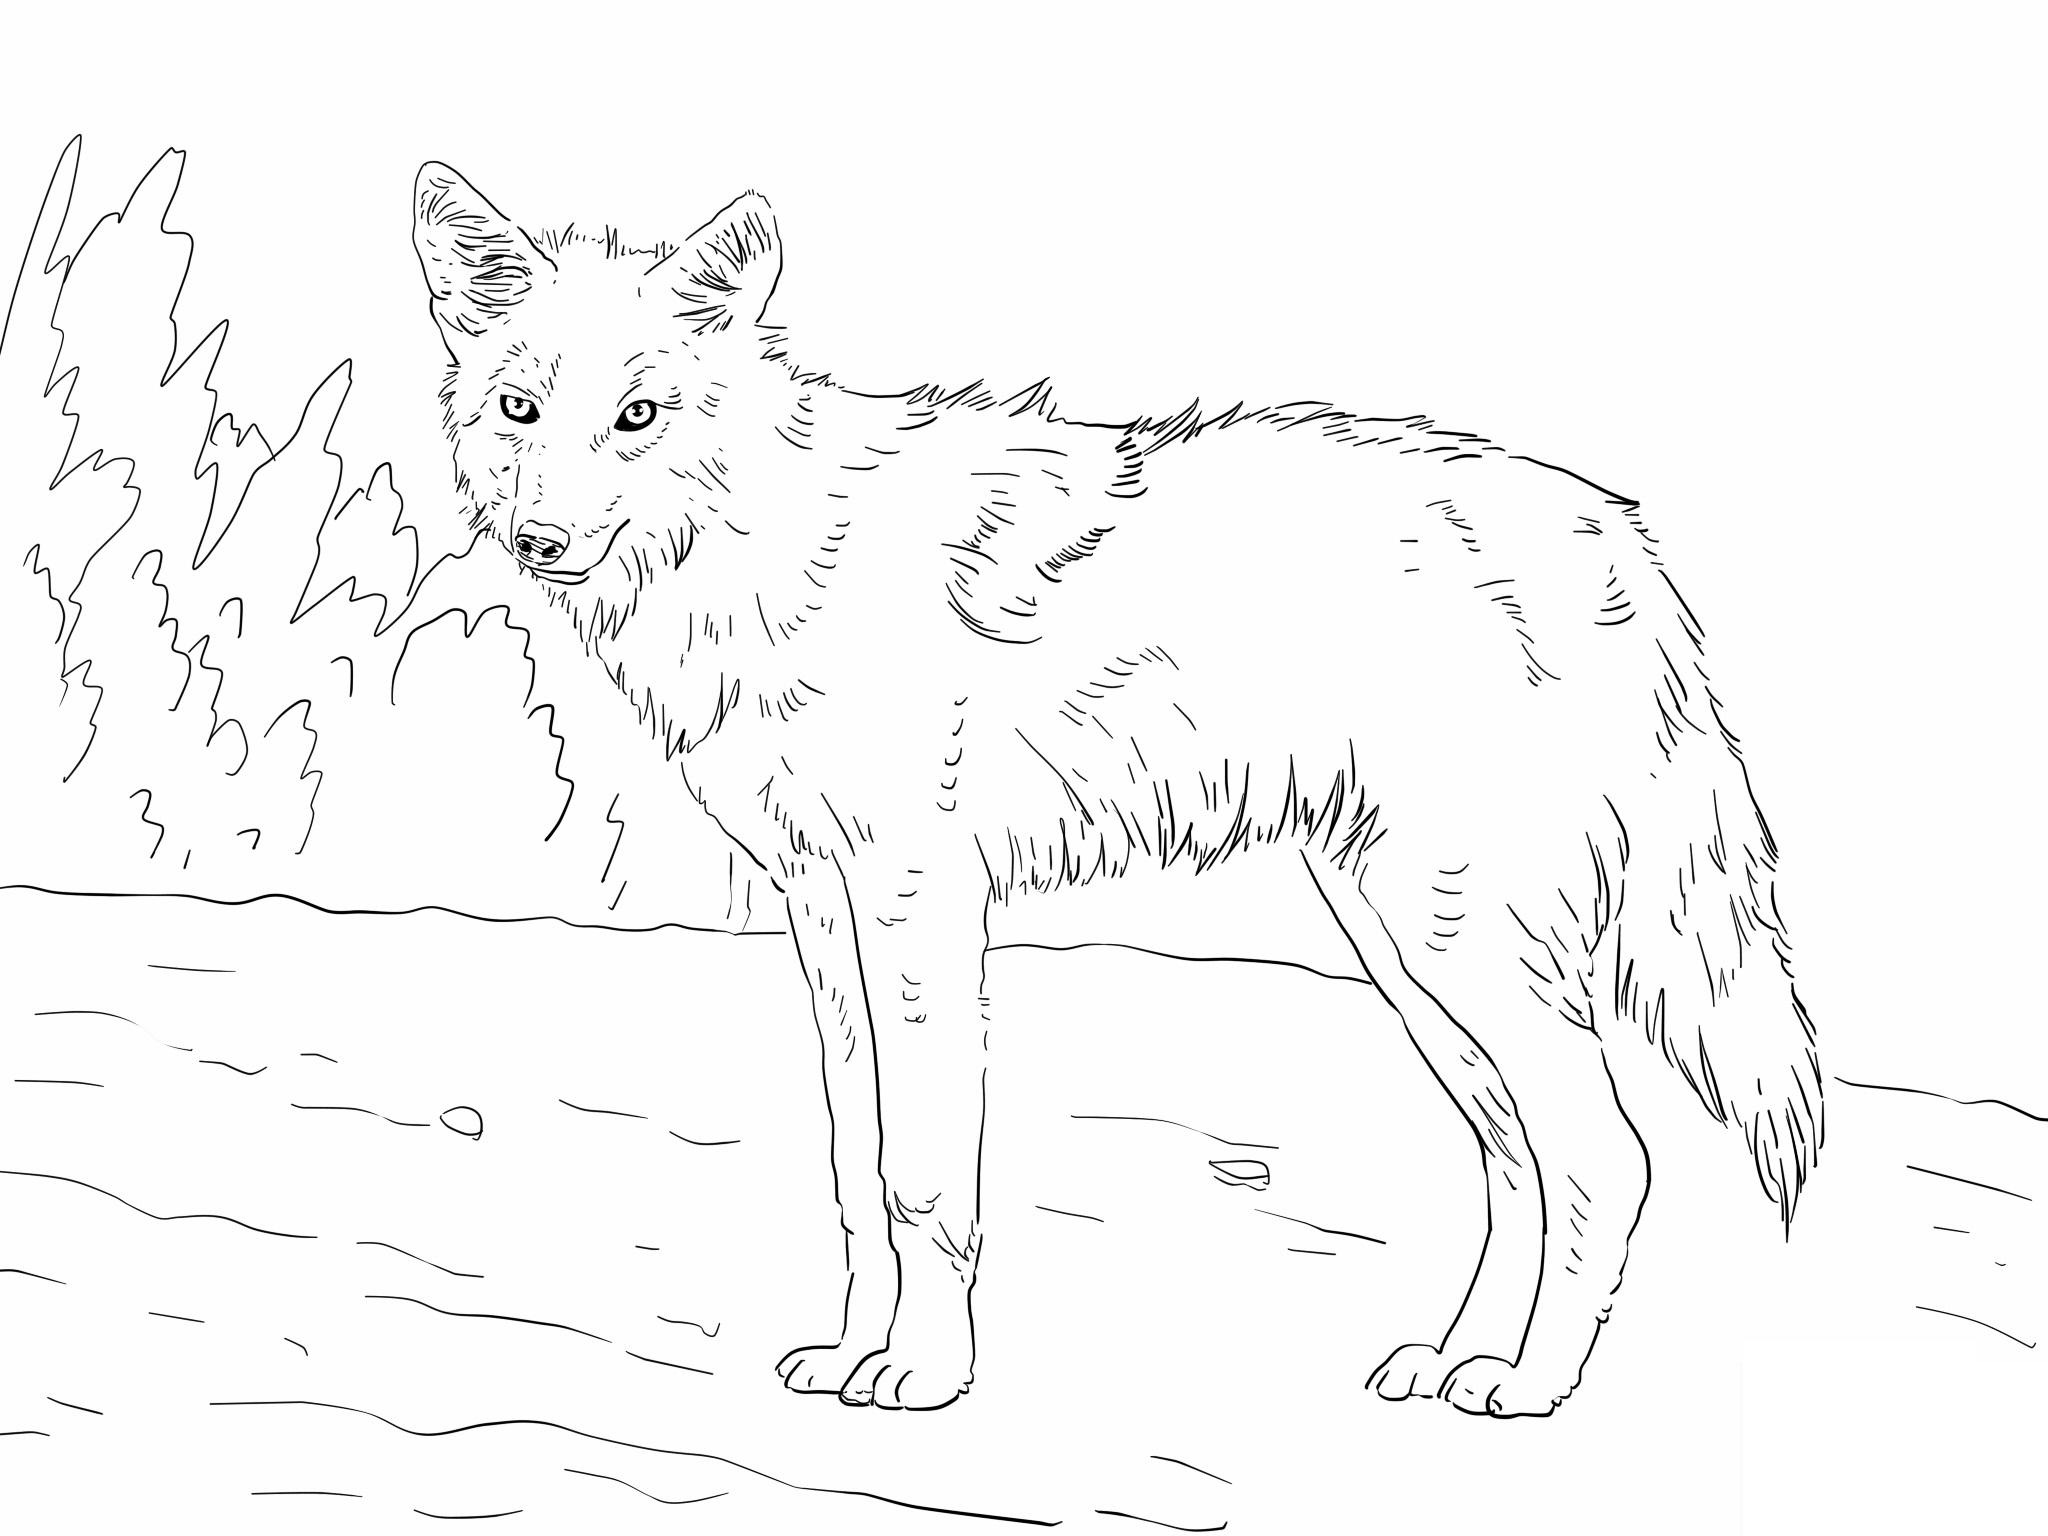 coyote coloring page coyote coloring pages to download and print for free coloring page coyote